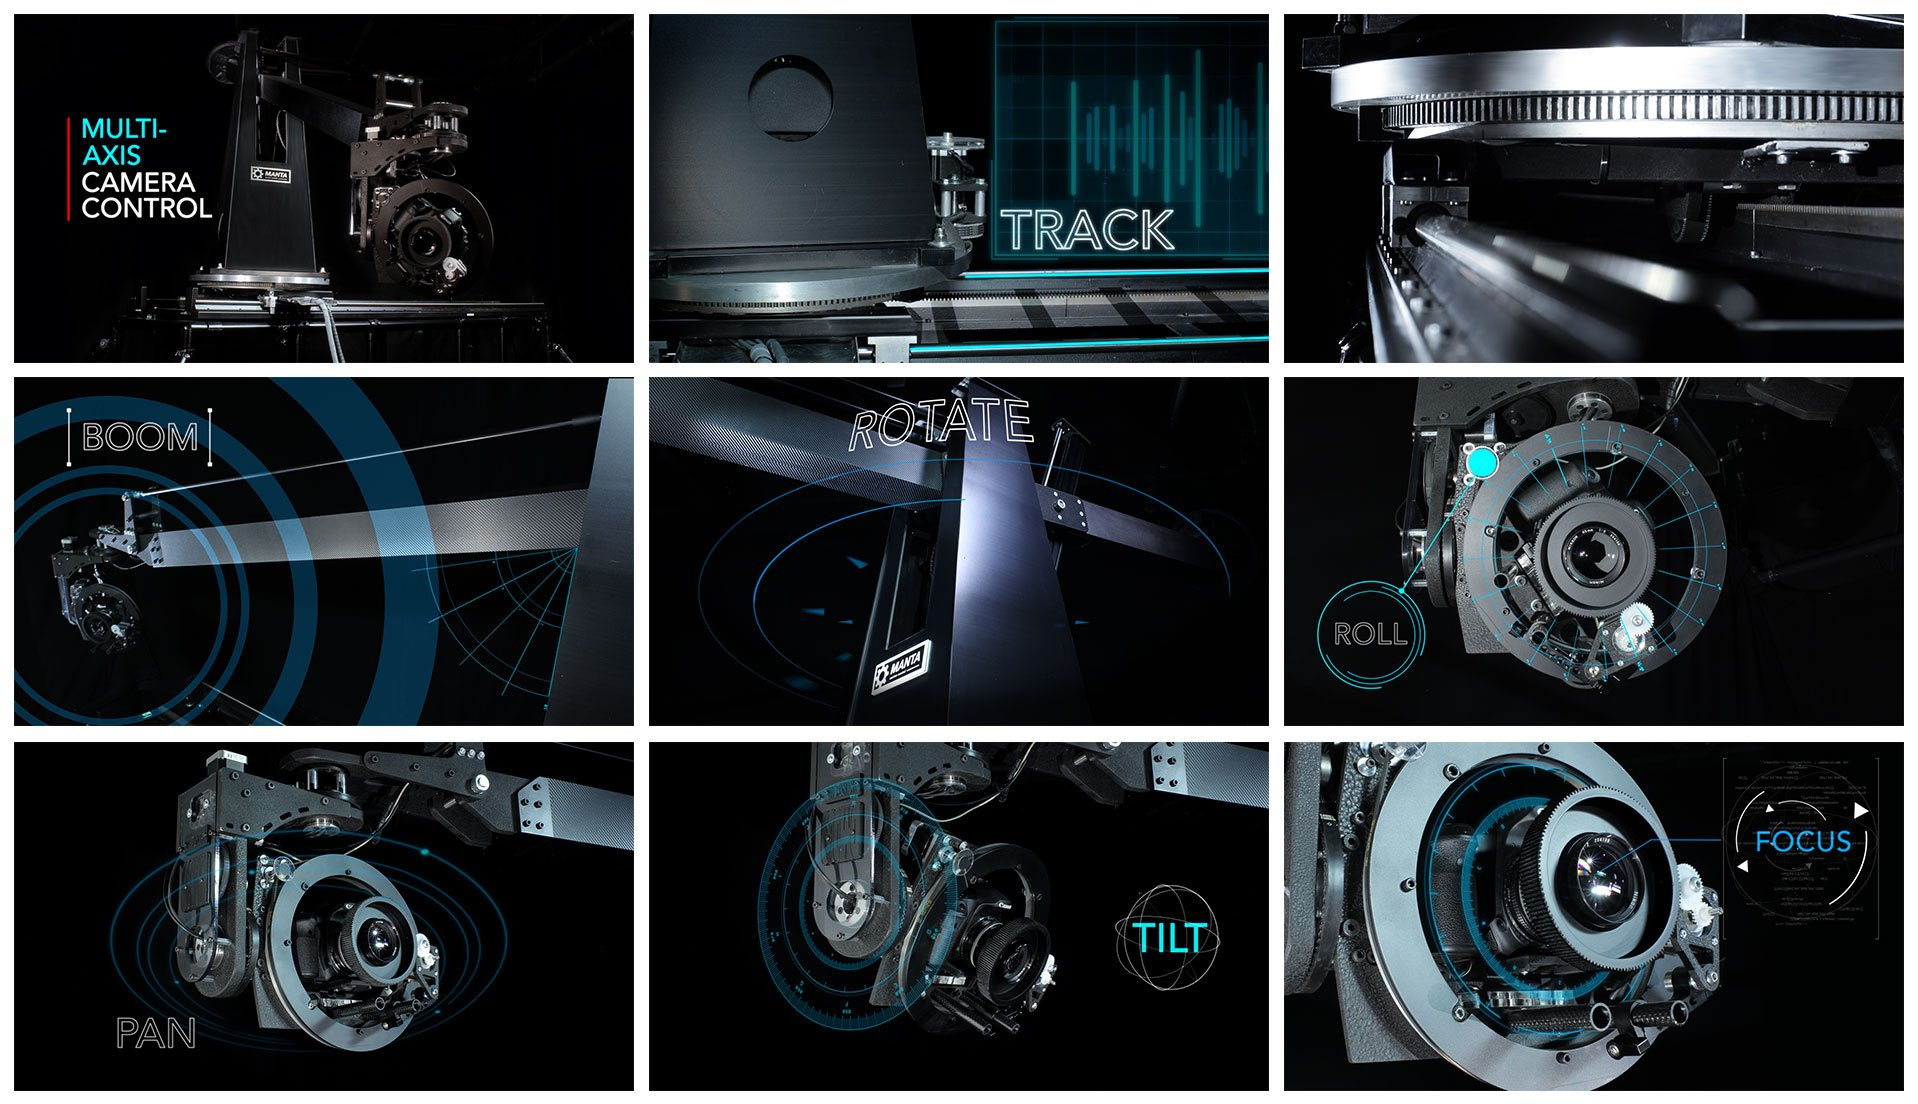 Montage of image of the axes of the Manta Motion Control Rig.